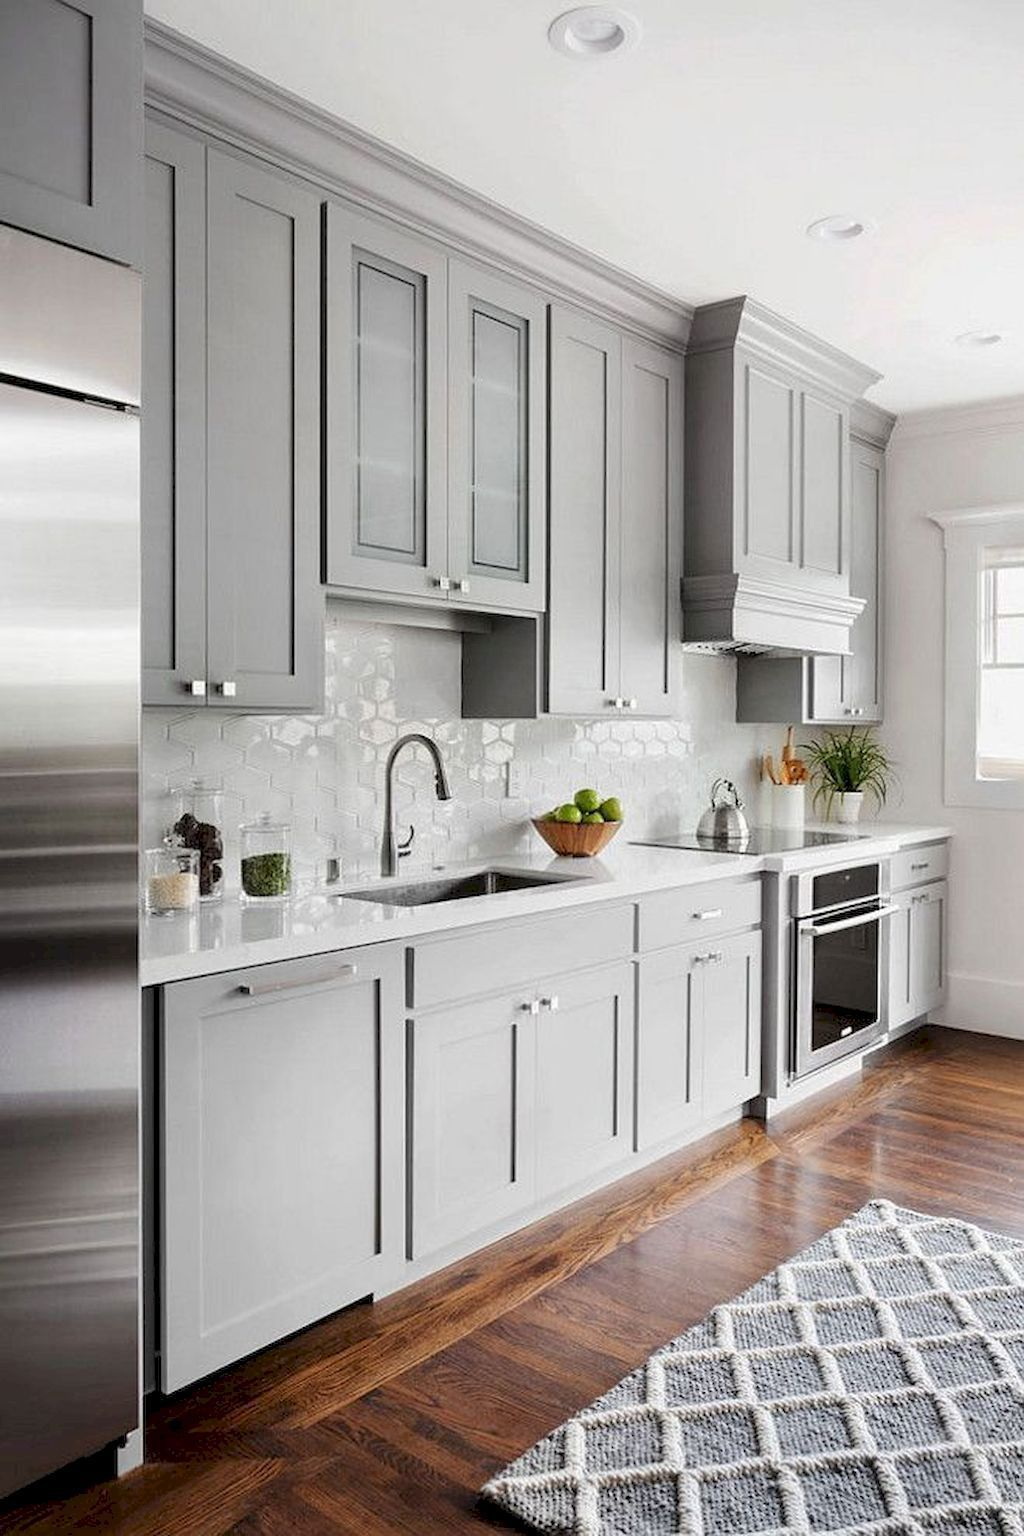 13 Smart Designs of How to Craft Rustic Gray Cabinets